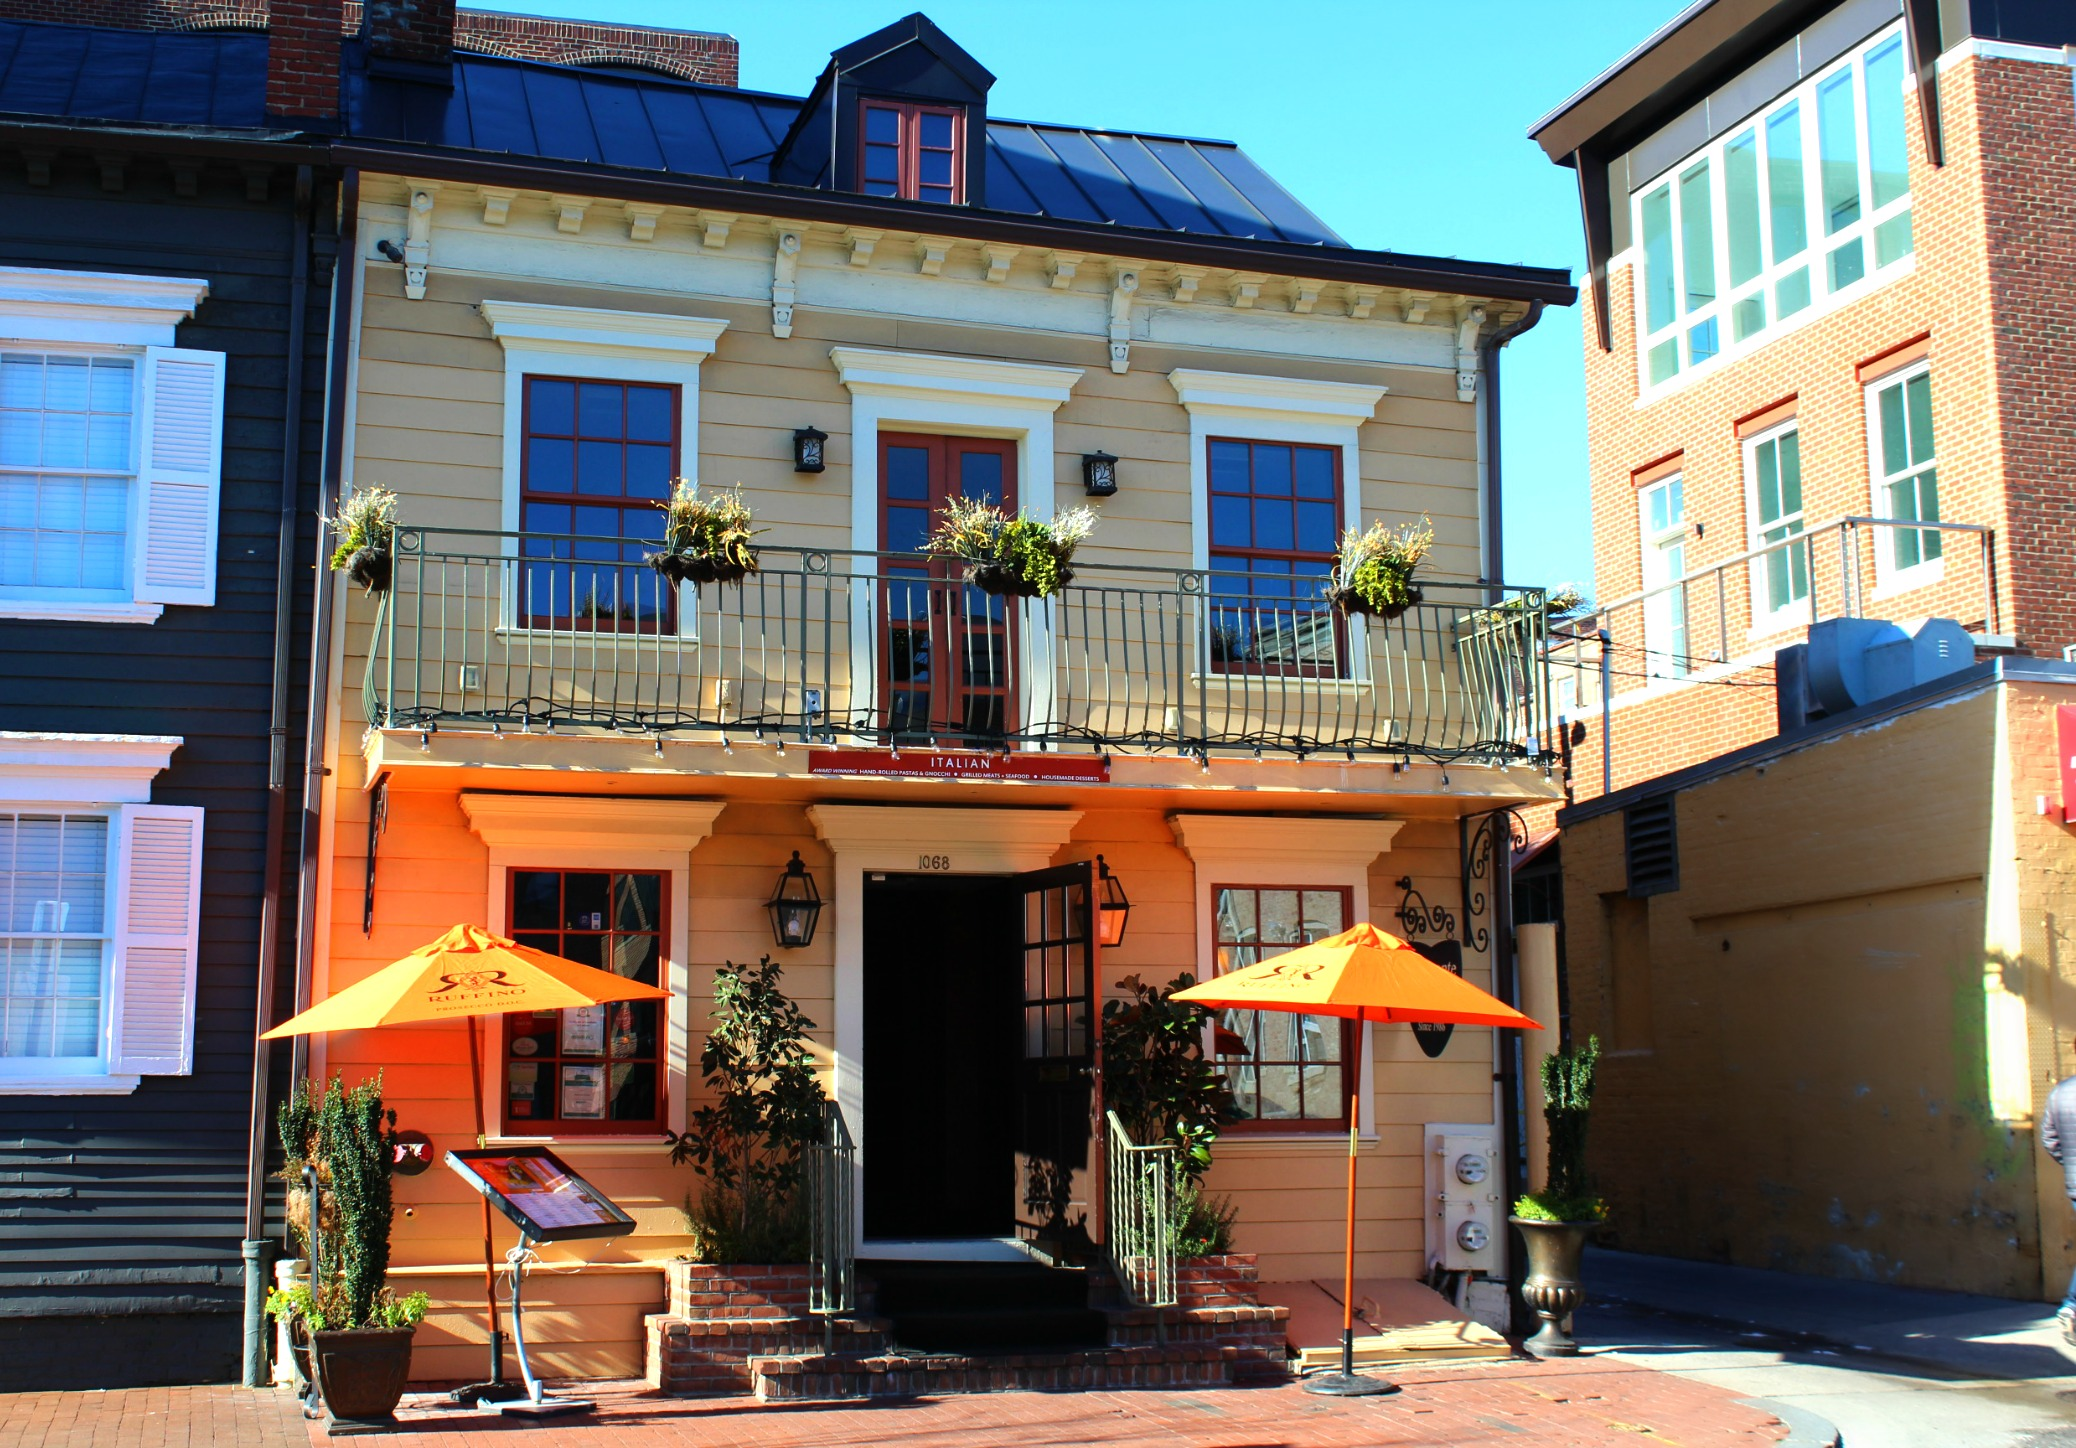 Ristorante Piccolo Georgetown Washington D.C.